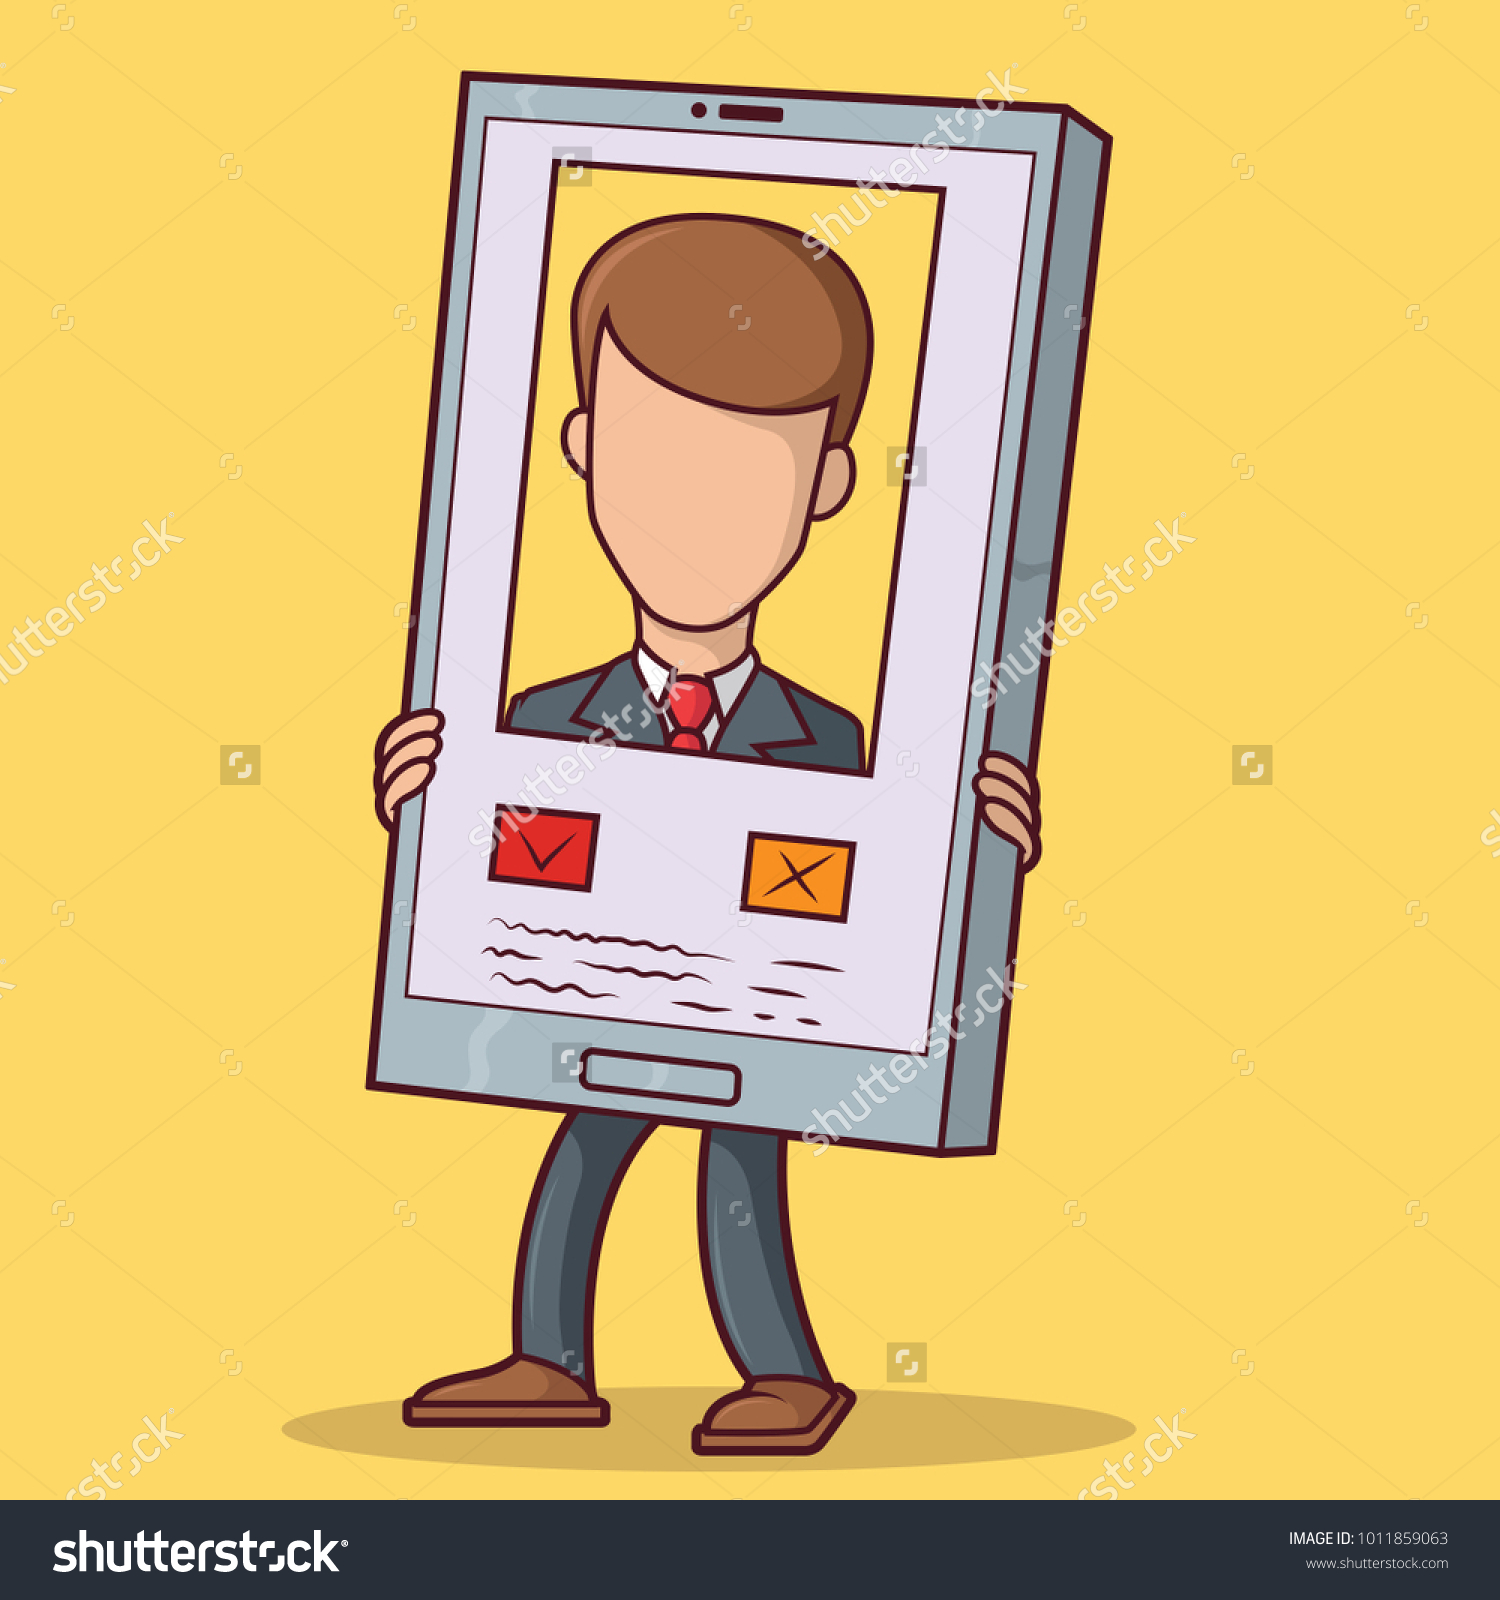 Man Holding Phone Showing Profile On Stock Vector (Royalty